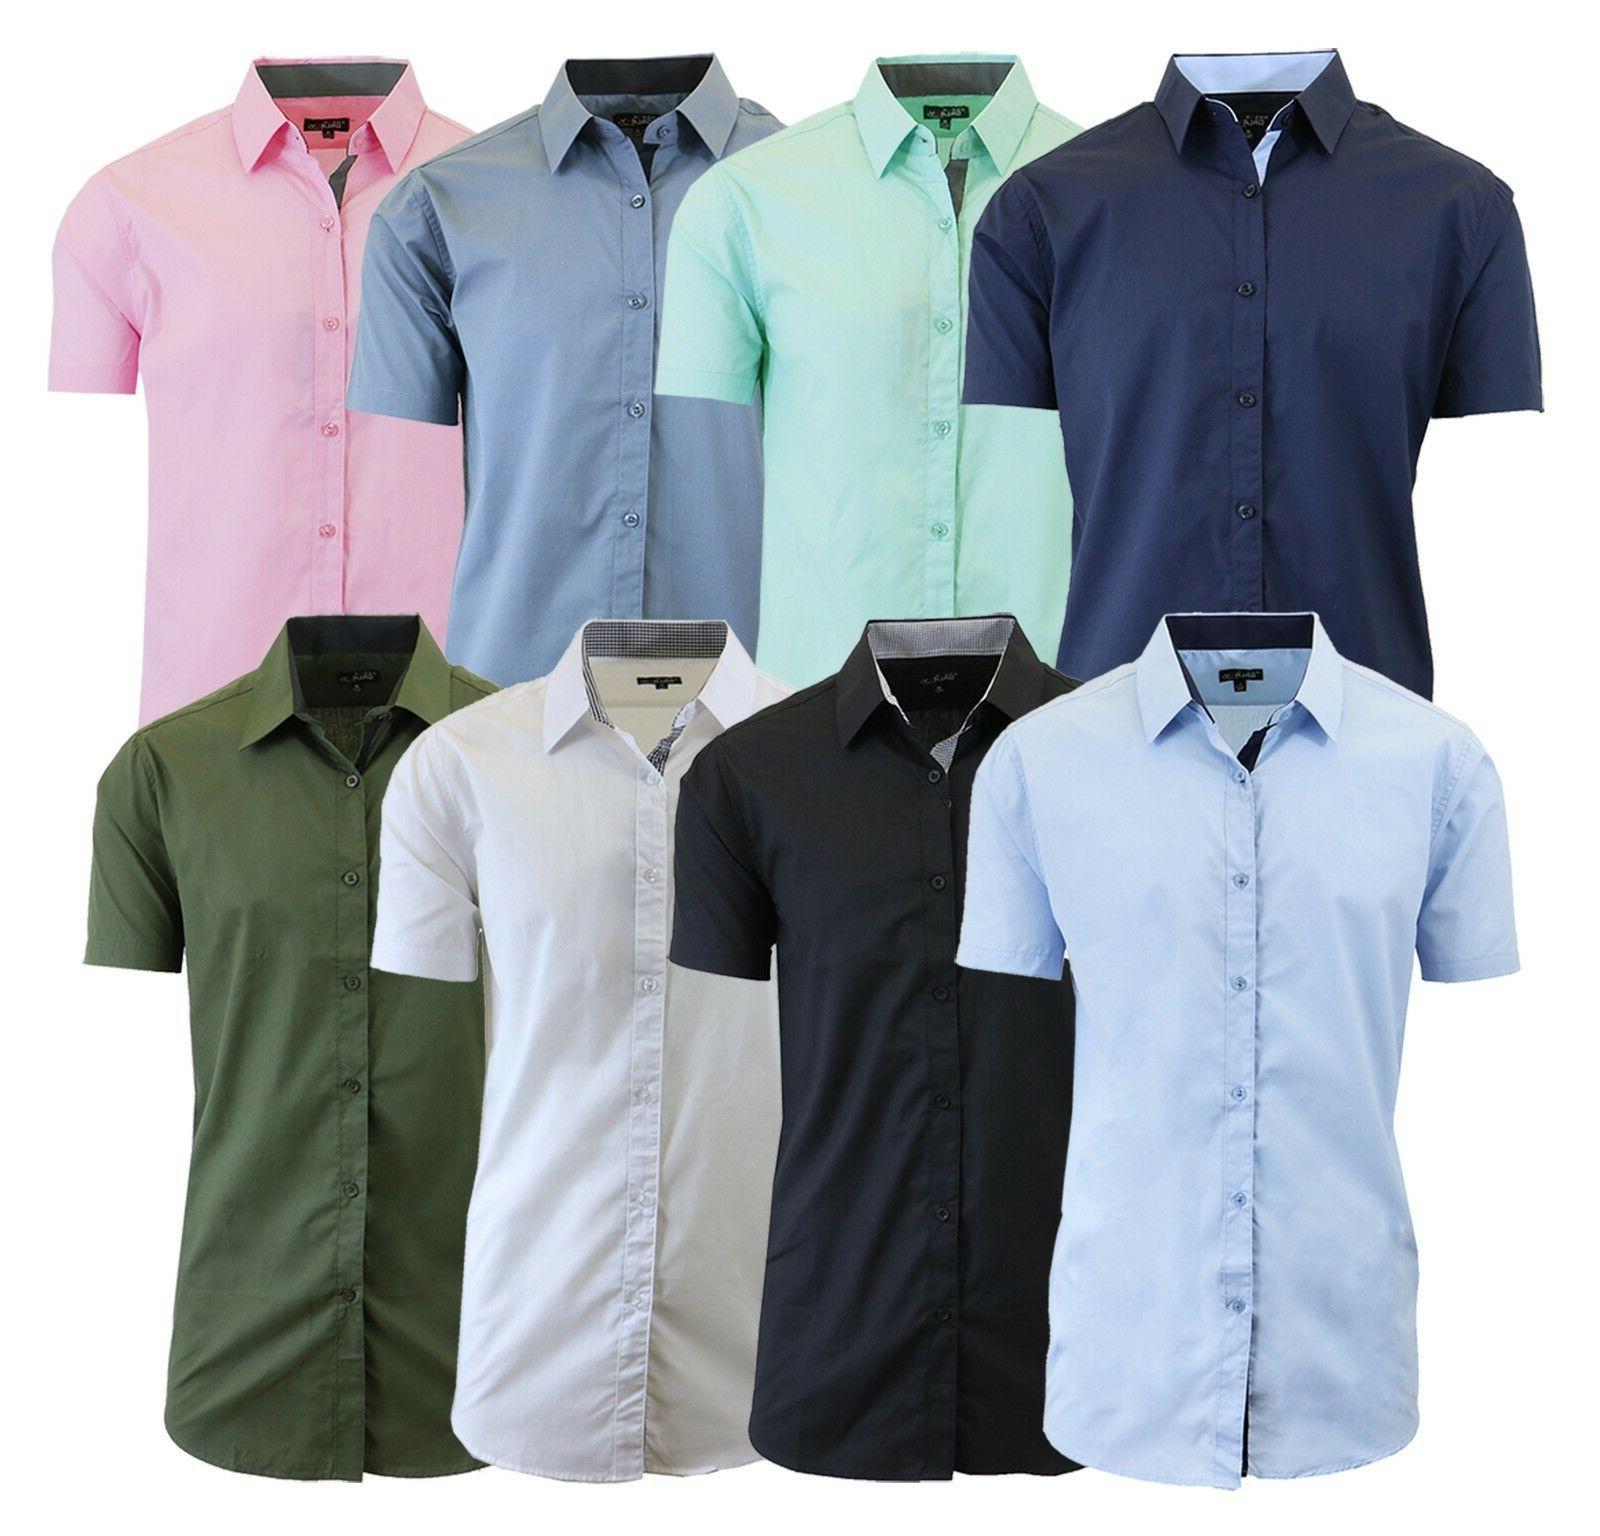 Mens Short Sleeve Dress Shirts Button Down Slim Fit Casual S